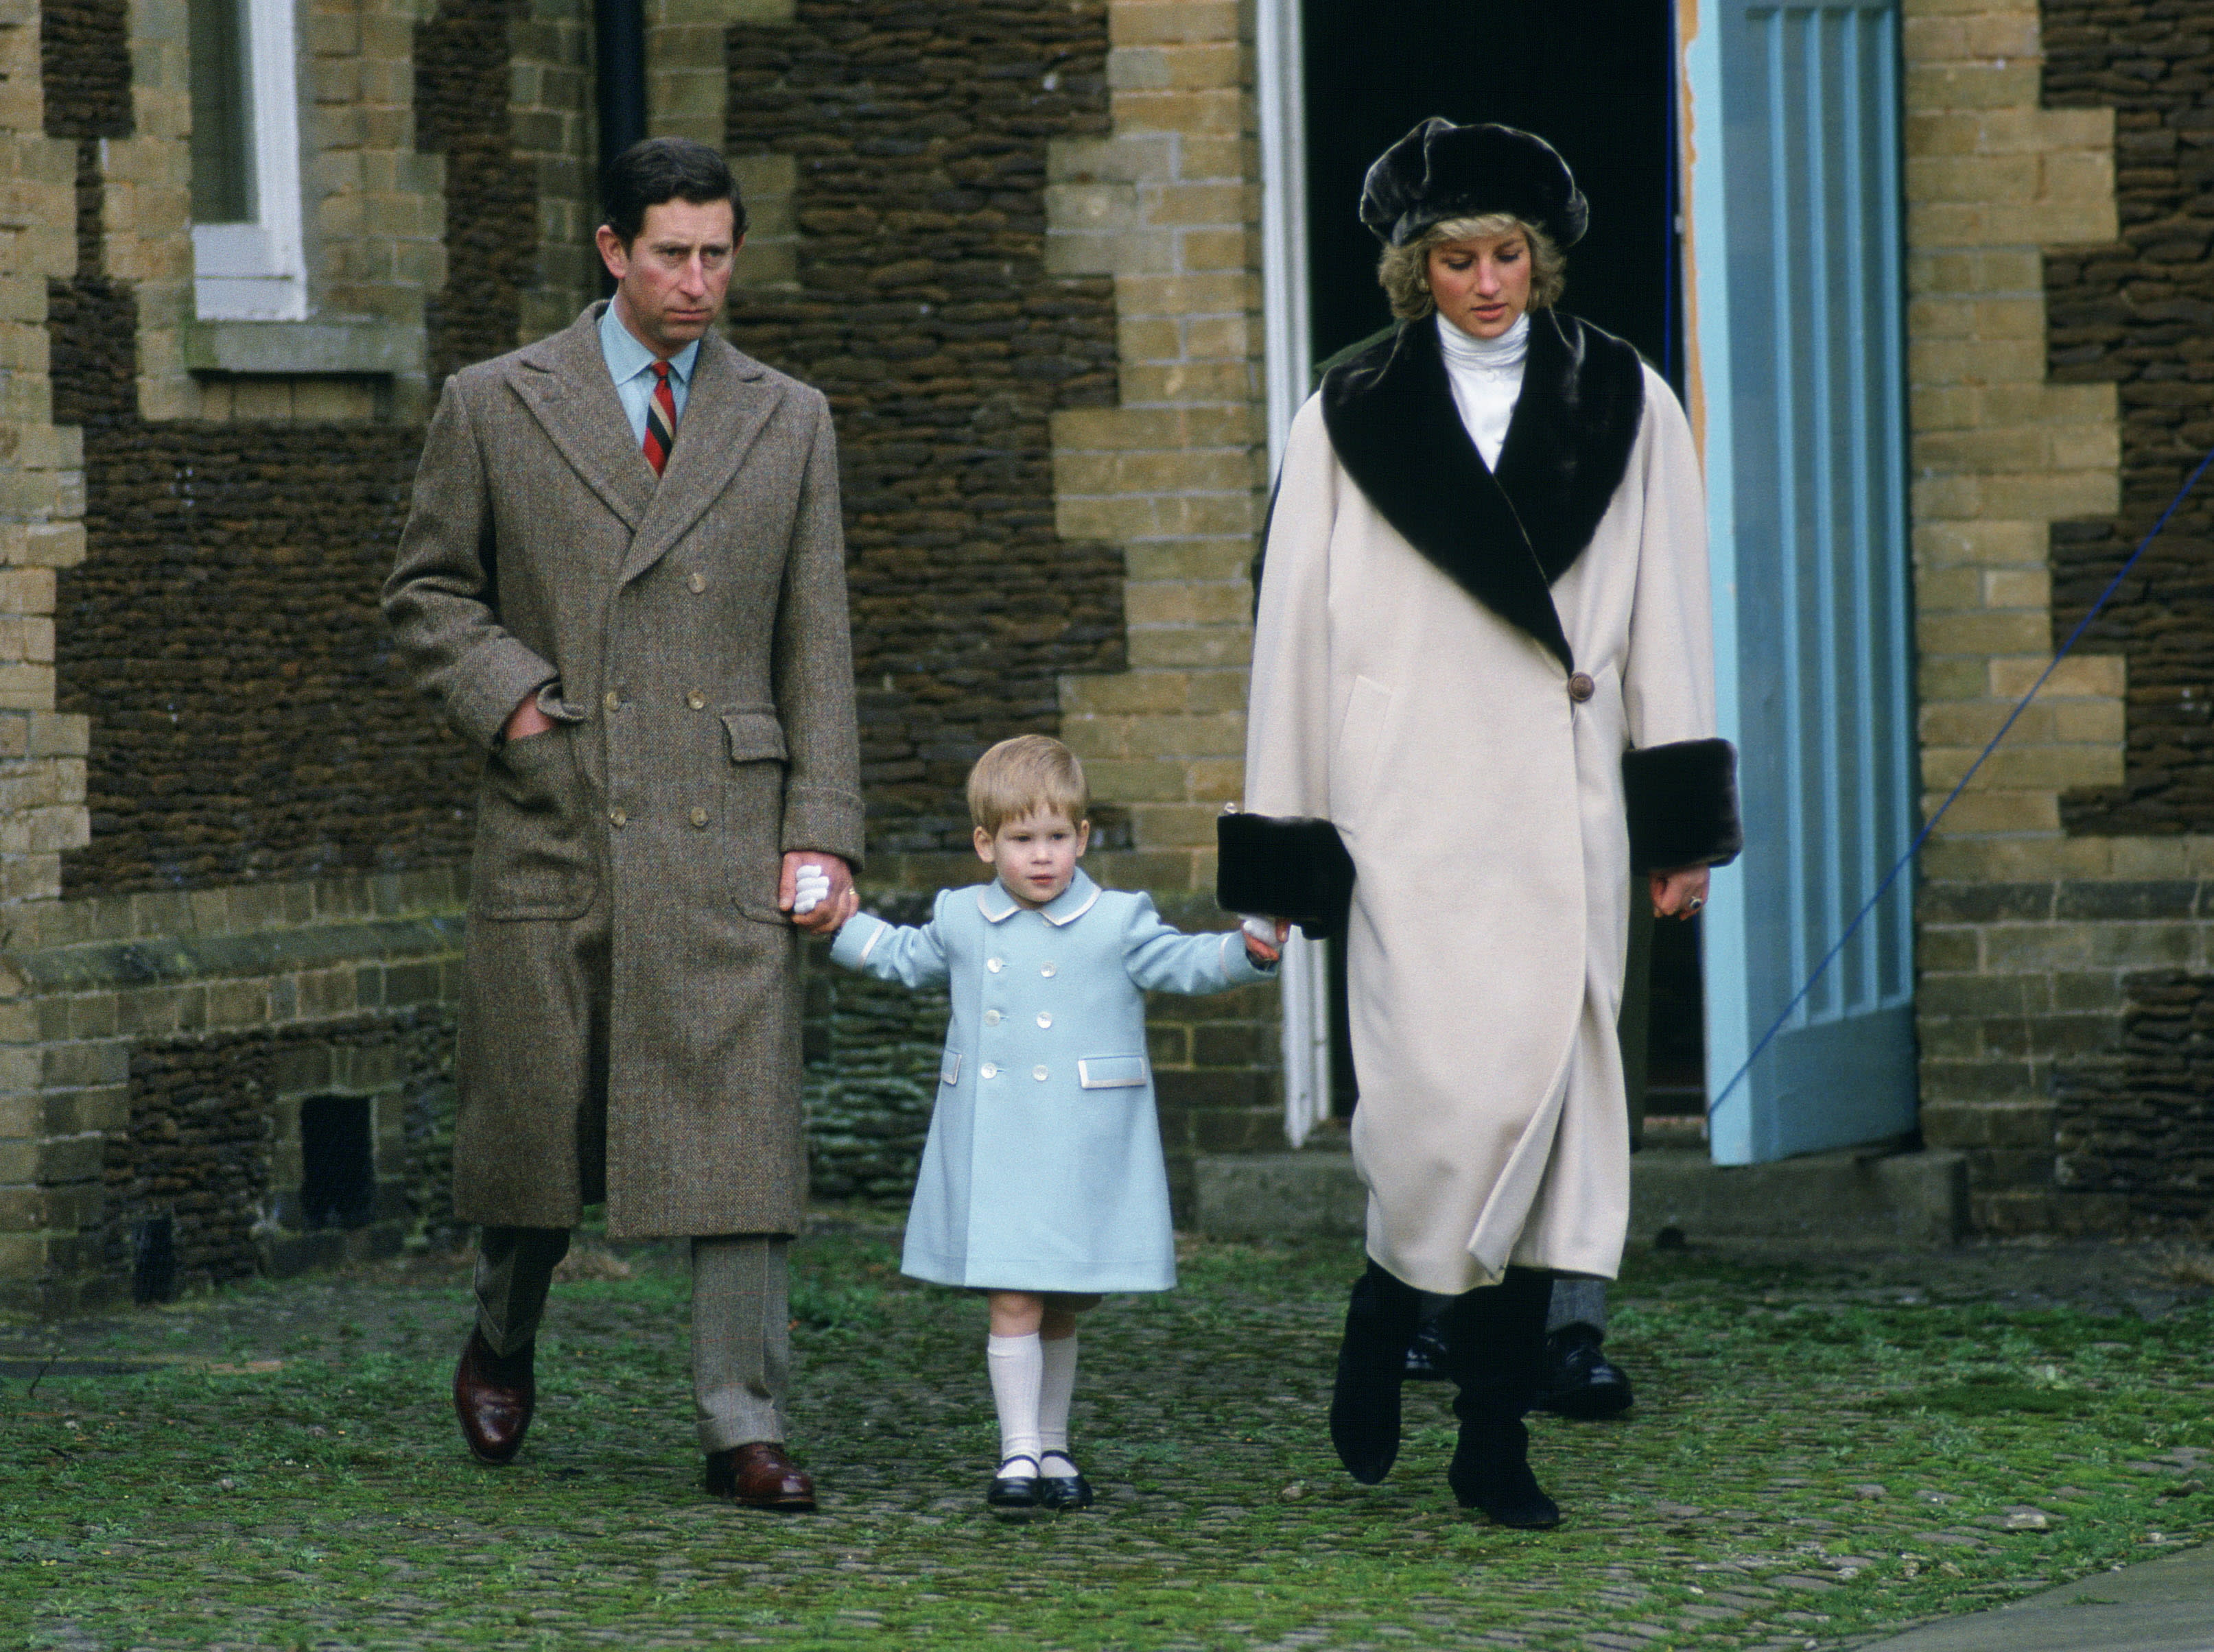 Prince Charles, Prince Harry and Princess Diana arrive for a photocall at Sandringham [Photo: Getty]